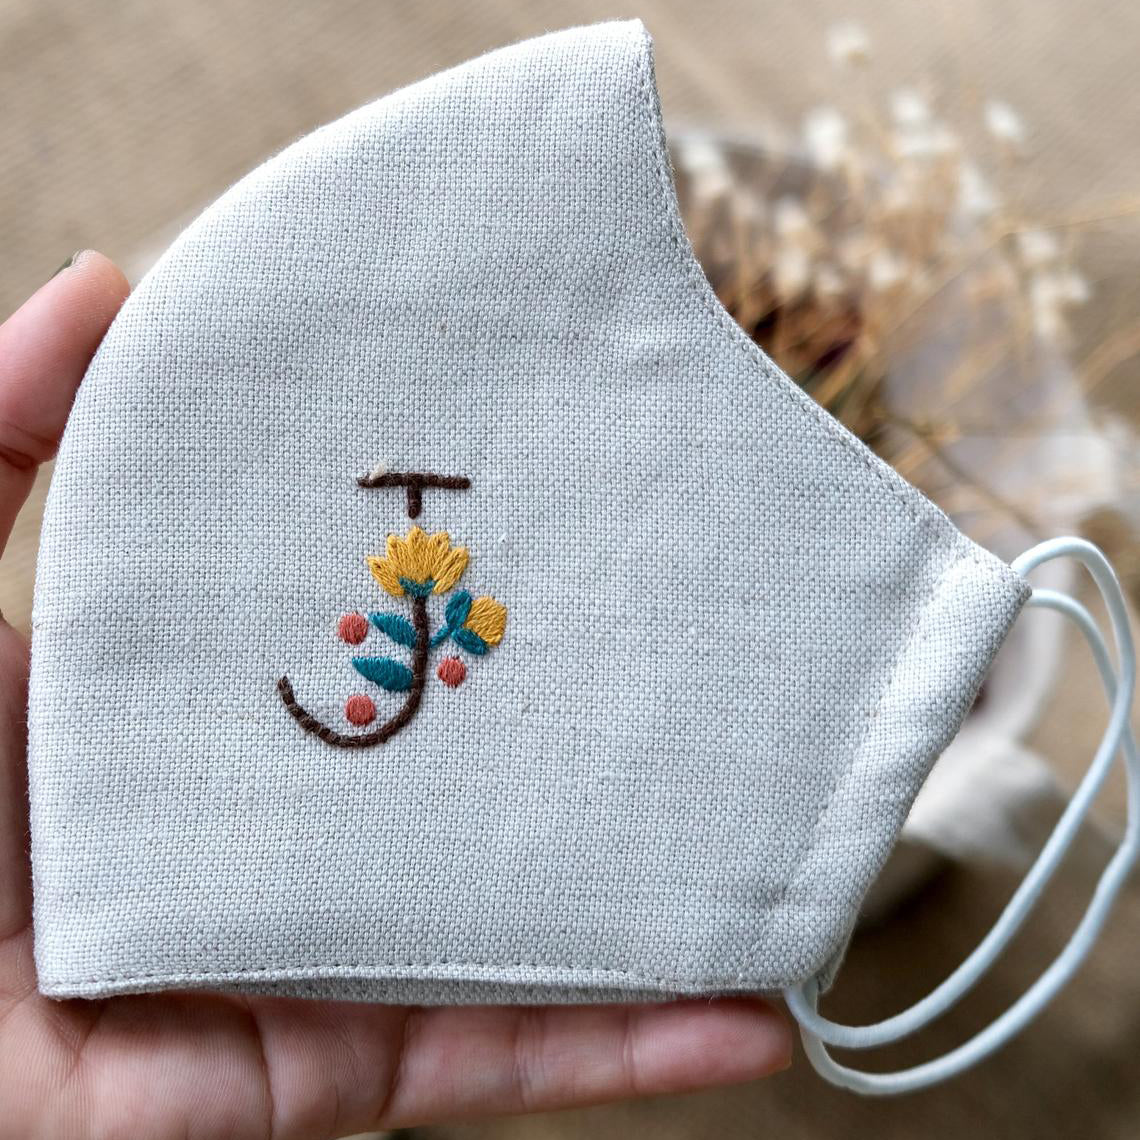 [BIG SALE] Customized Name Hand Embroidery Linen Face Mask